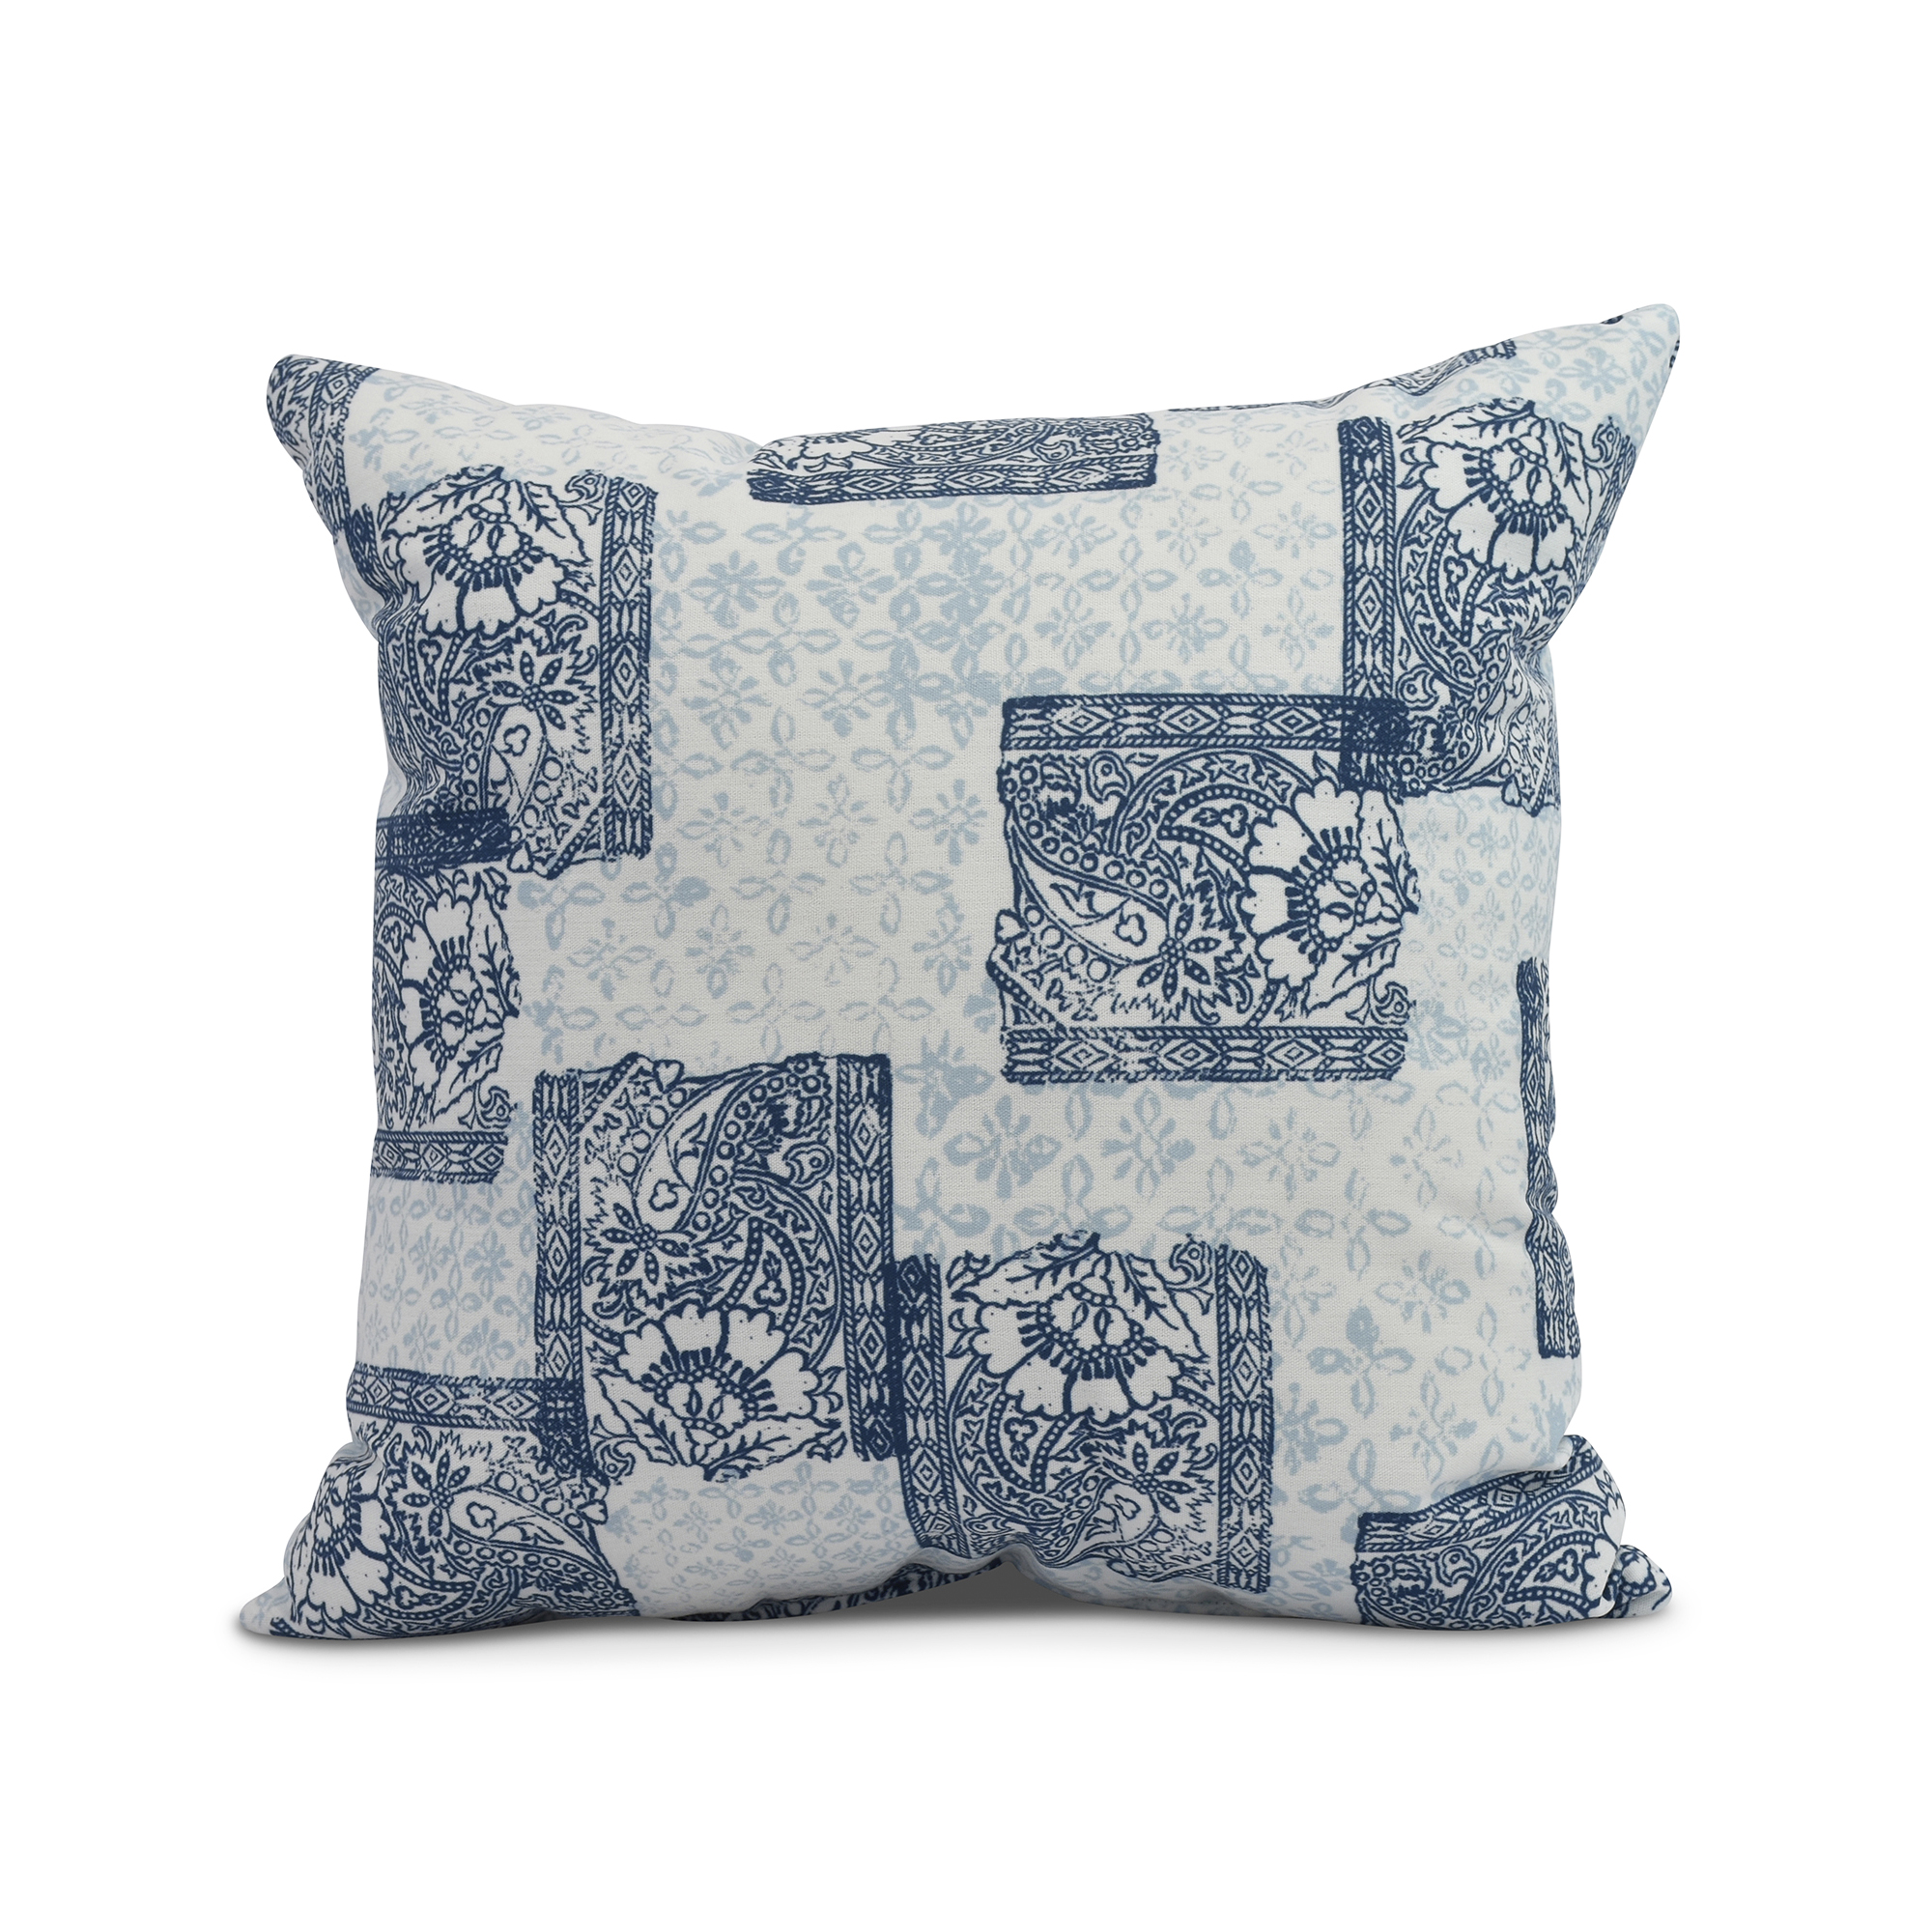 Simply Daisy, 16 x 16inch,Patches Decorative Pillow,Navy Blue